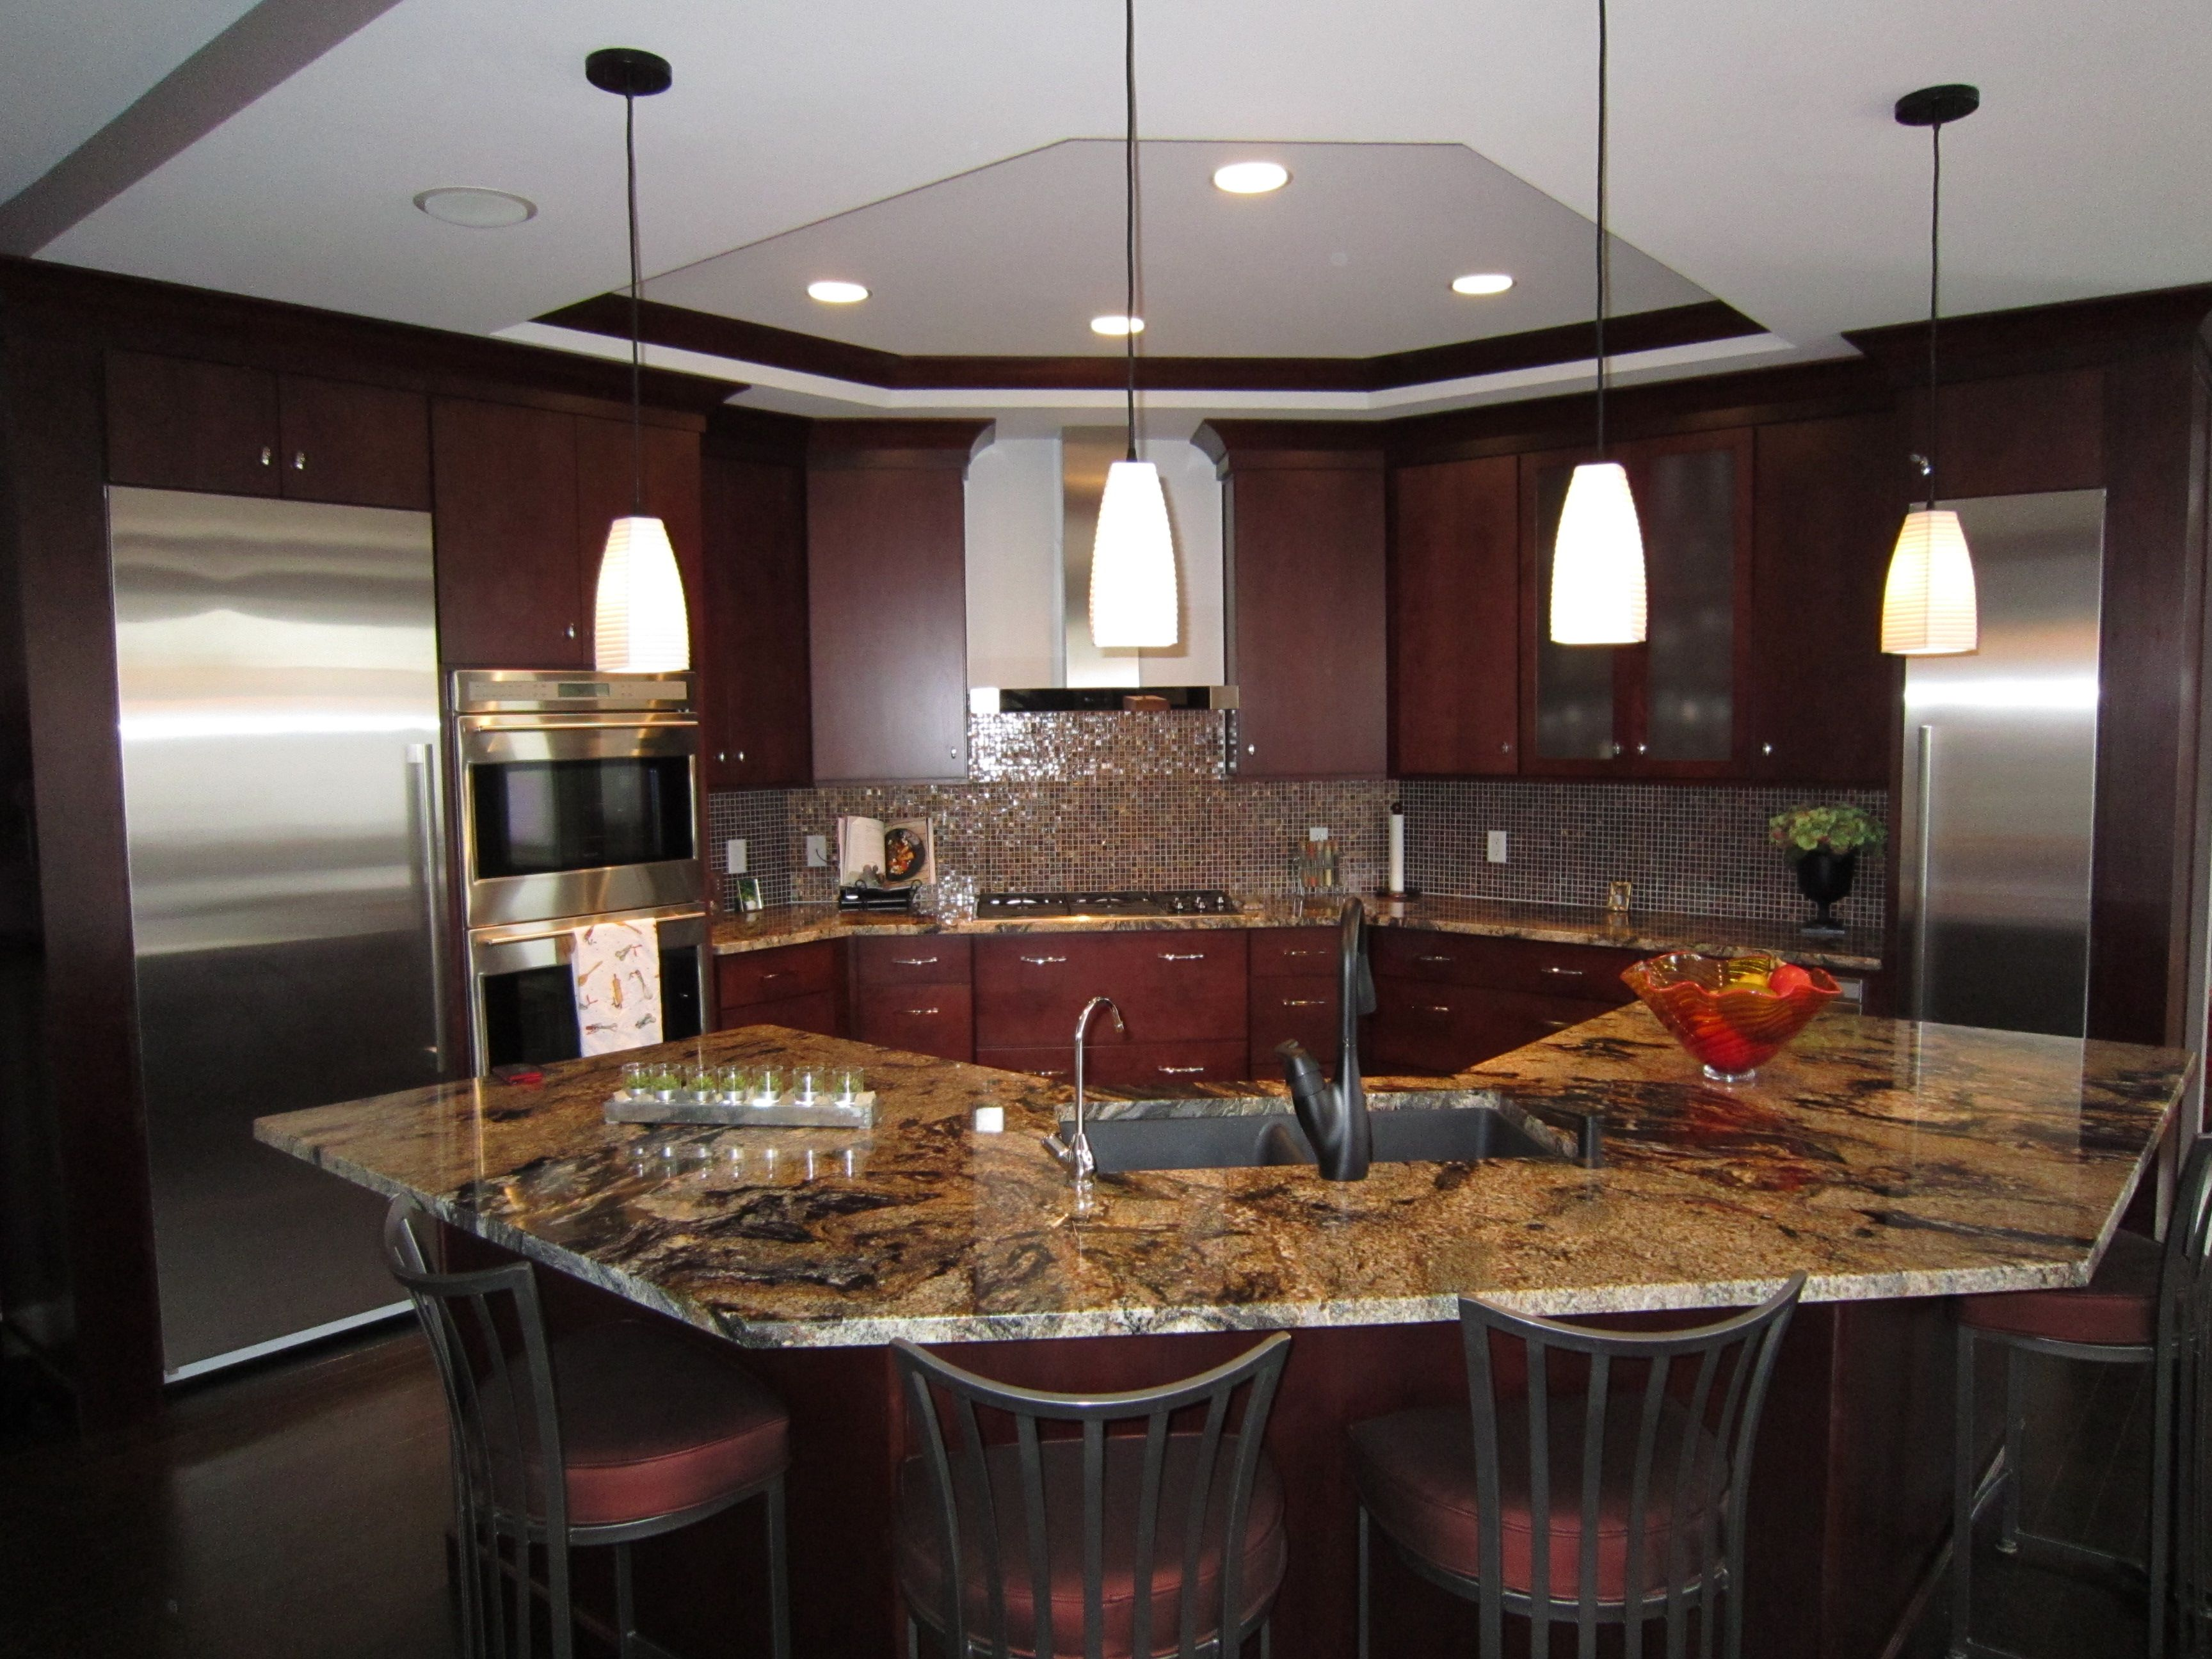 luxury kitchens photo gallery | Please enable JavaScript to view the ...